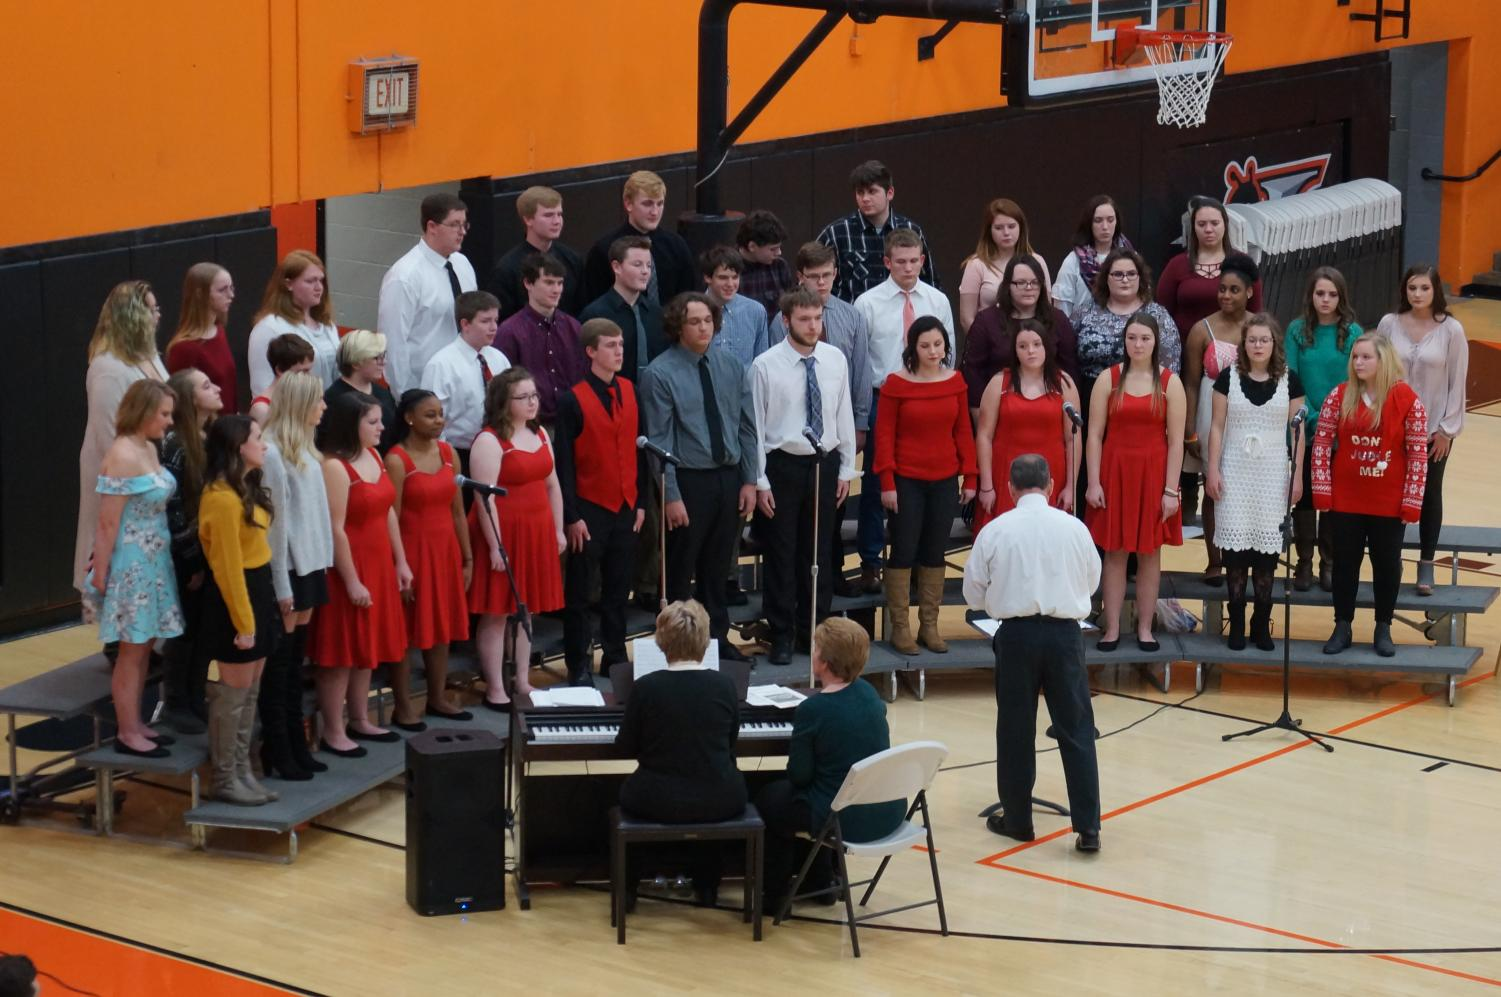 The Chester High School Concert Choir performed